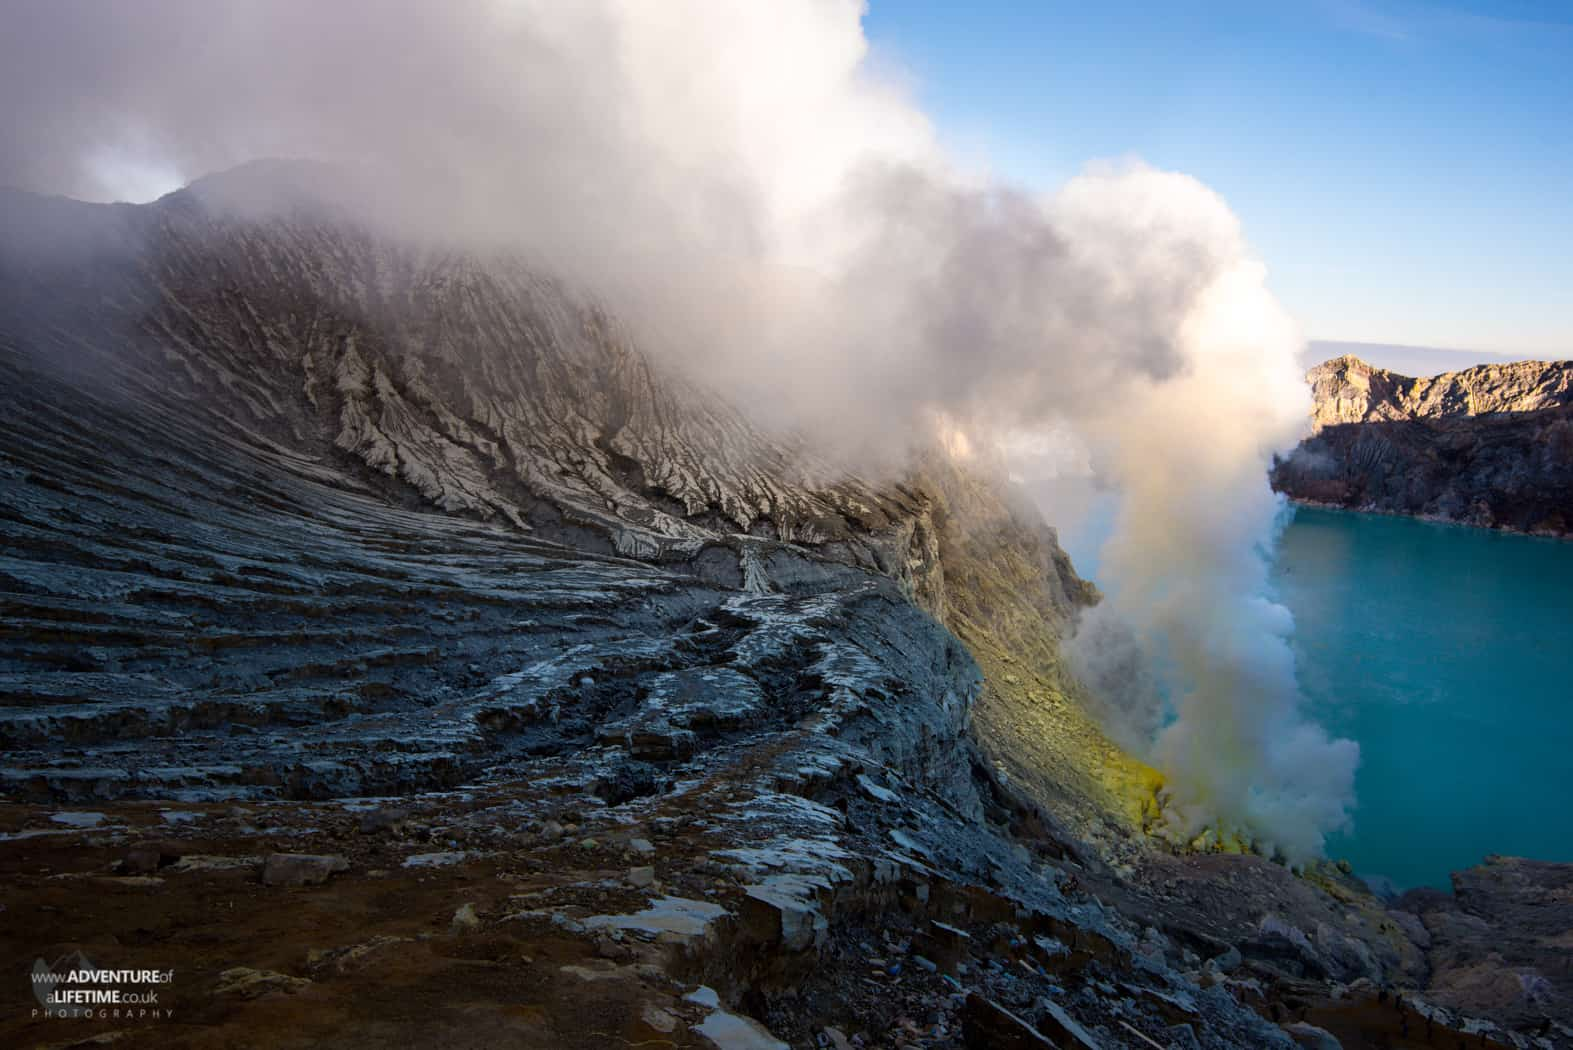 Smoke billows from the Sulphur Mine on Ijen volcano, Java